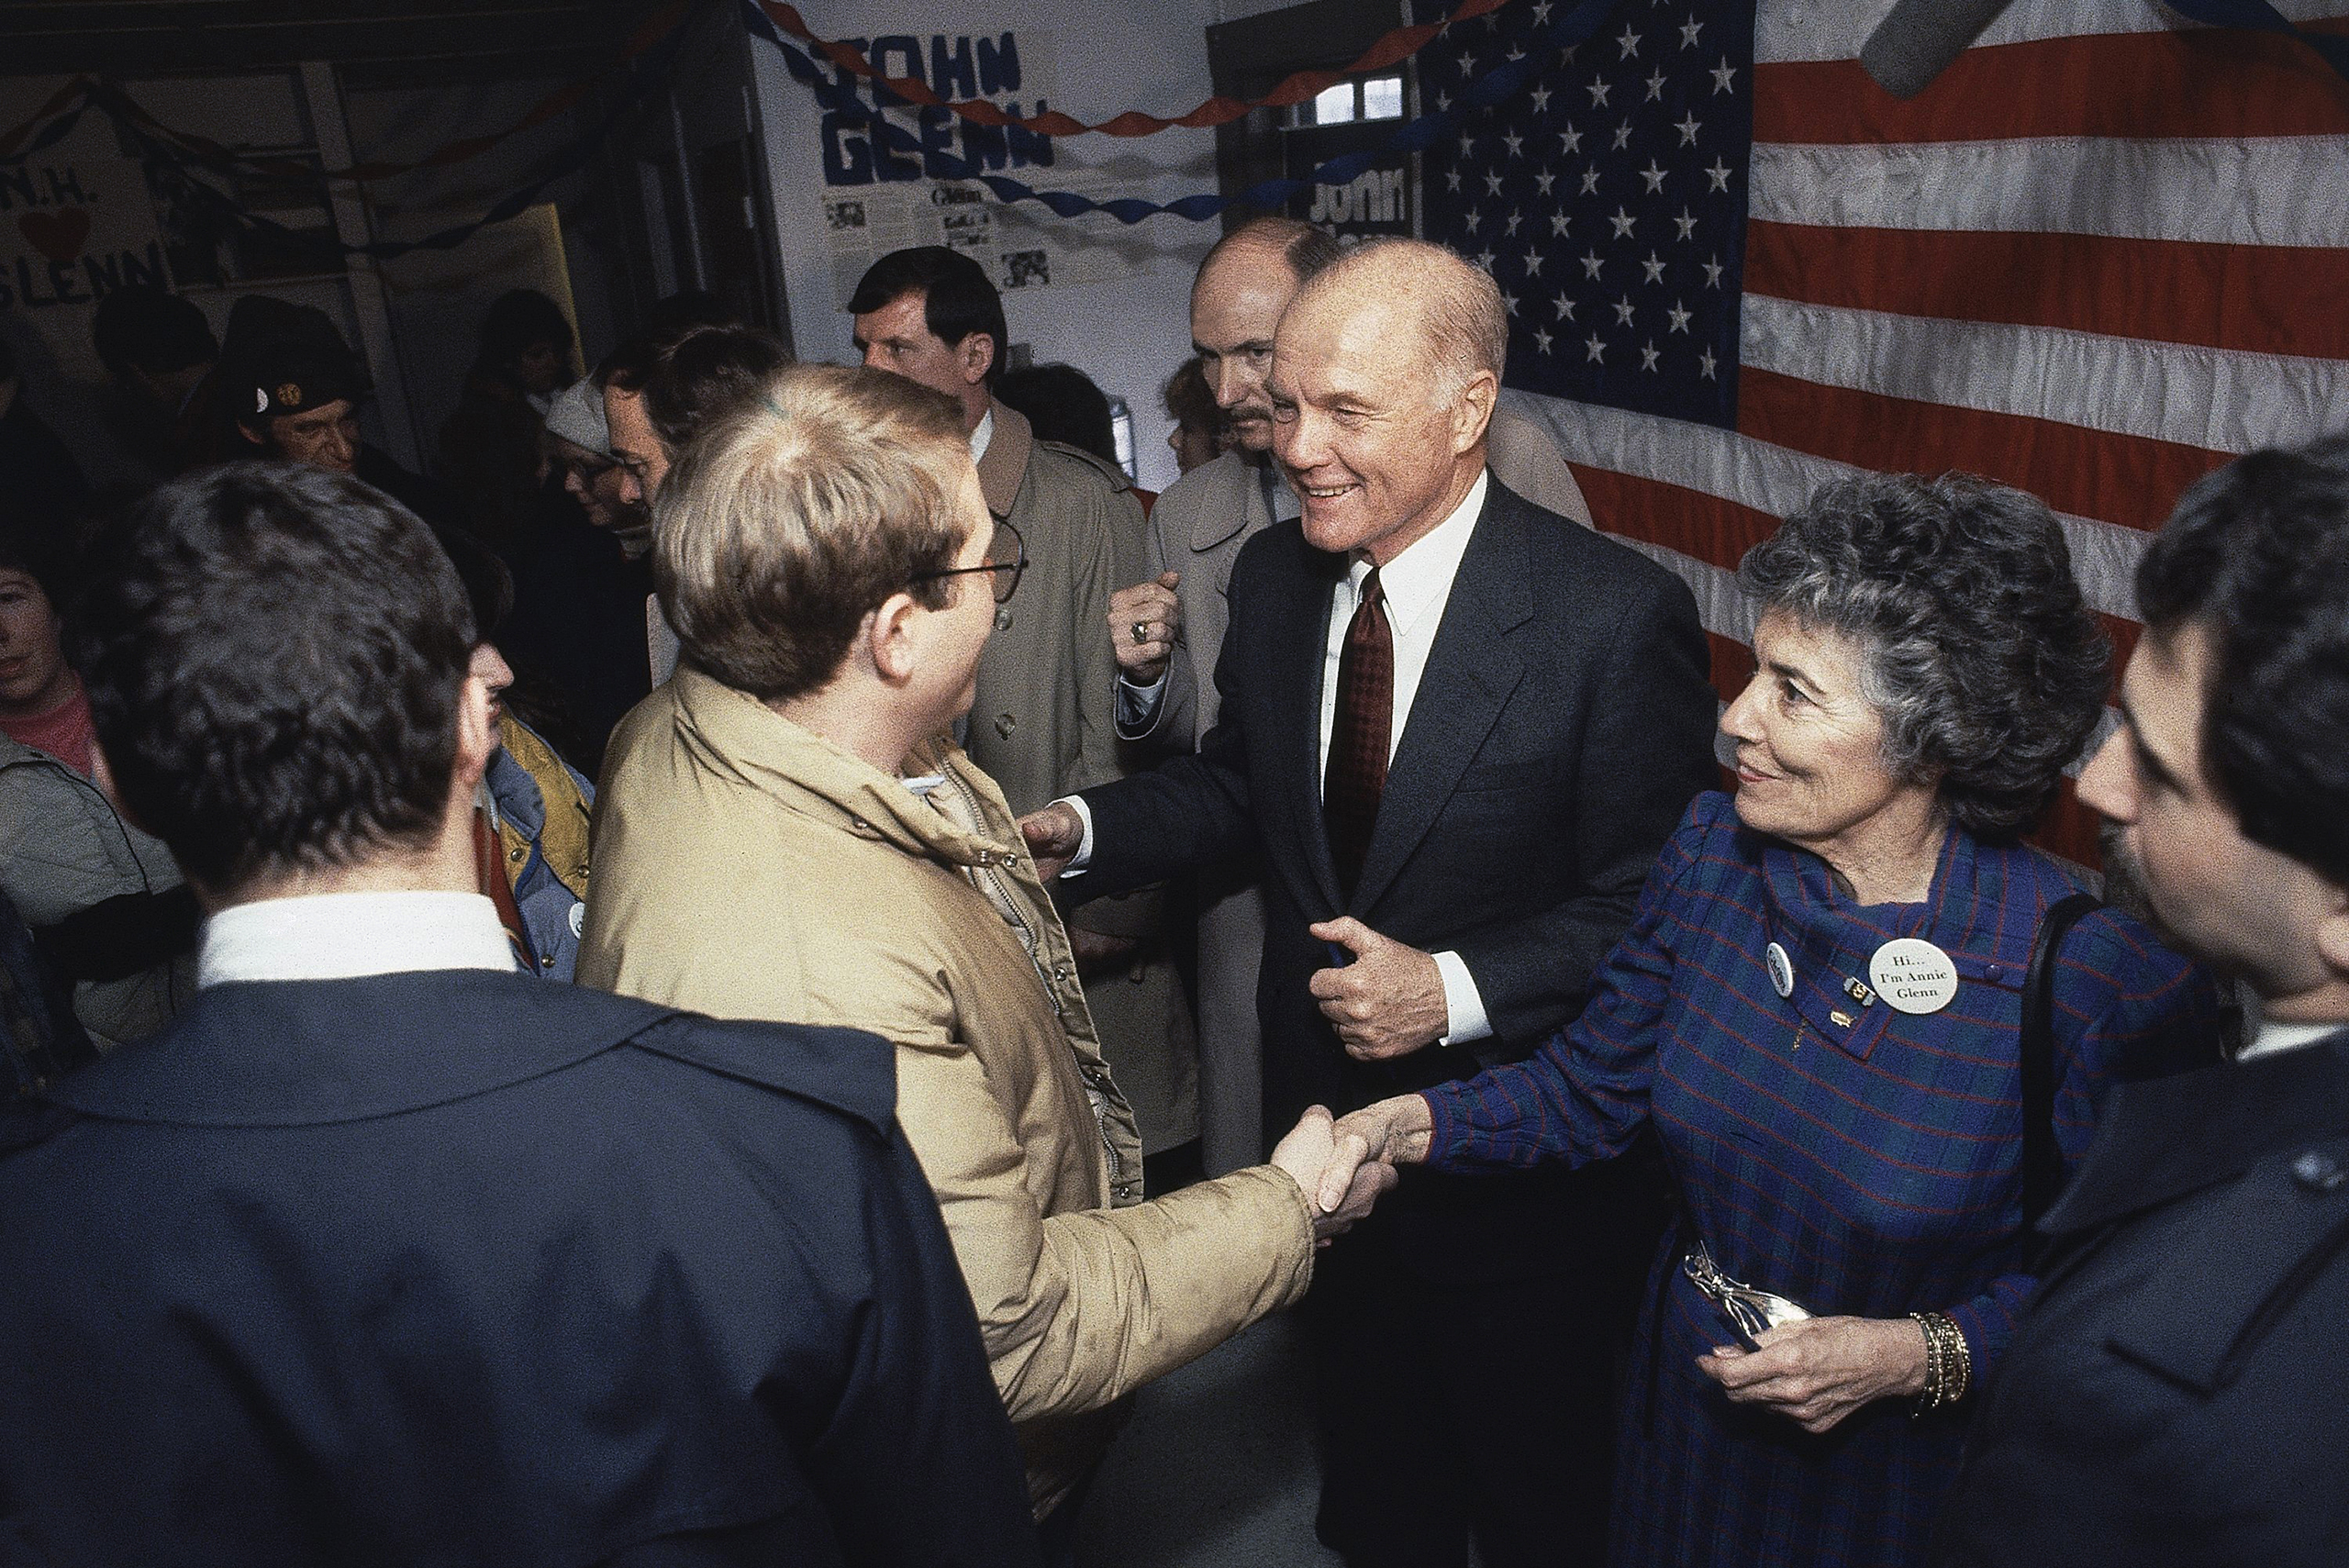 <b>A Run for the Highest Office (on Earth)</b>                                   A presidential candidate in 1984, Glenn campaigned with his wife Annie in New Hampshire. Though his Senate wins came easily after his first victory, Glenn proved a harder sell to a national electorate, mostly because of his dry — the media would call it boring — campaign style.